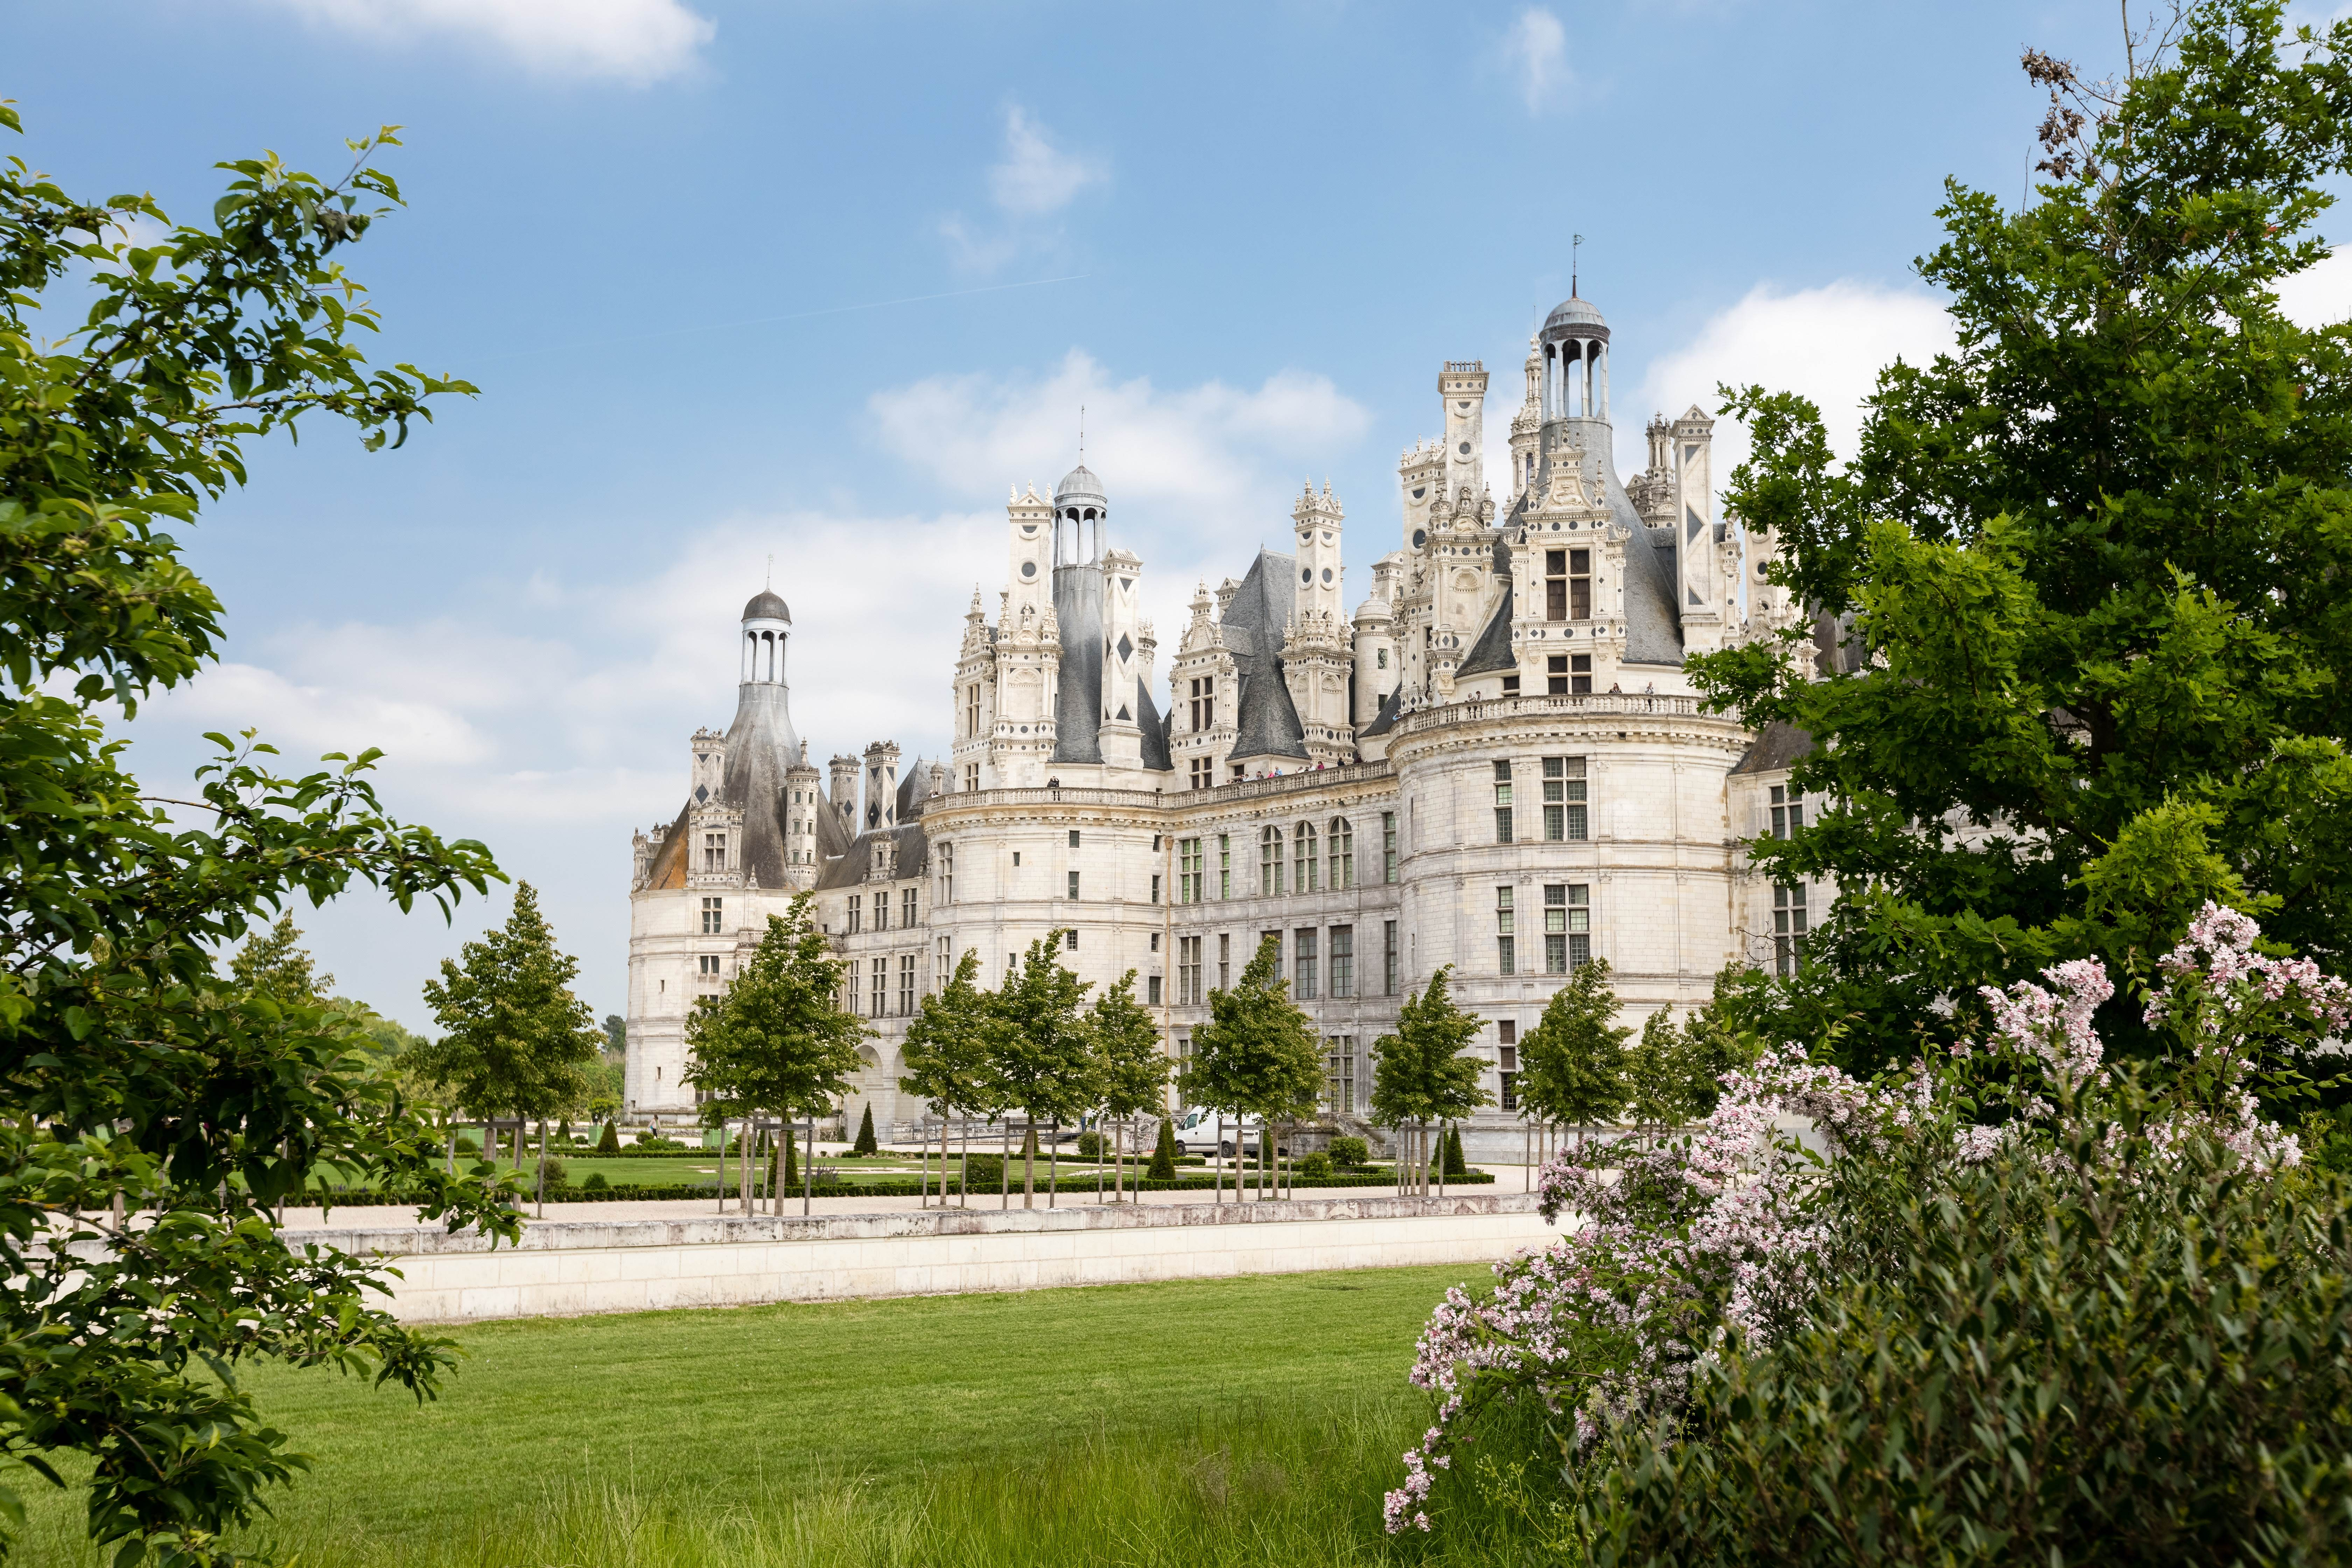 Château de Chambord, France - Castles Straight Out From Fairy Tales